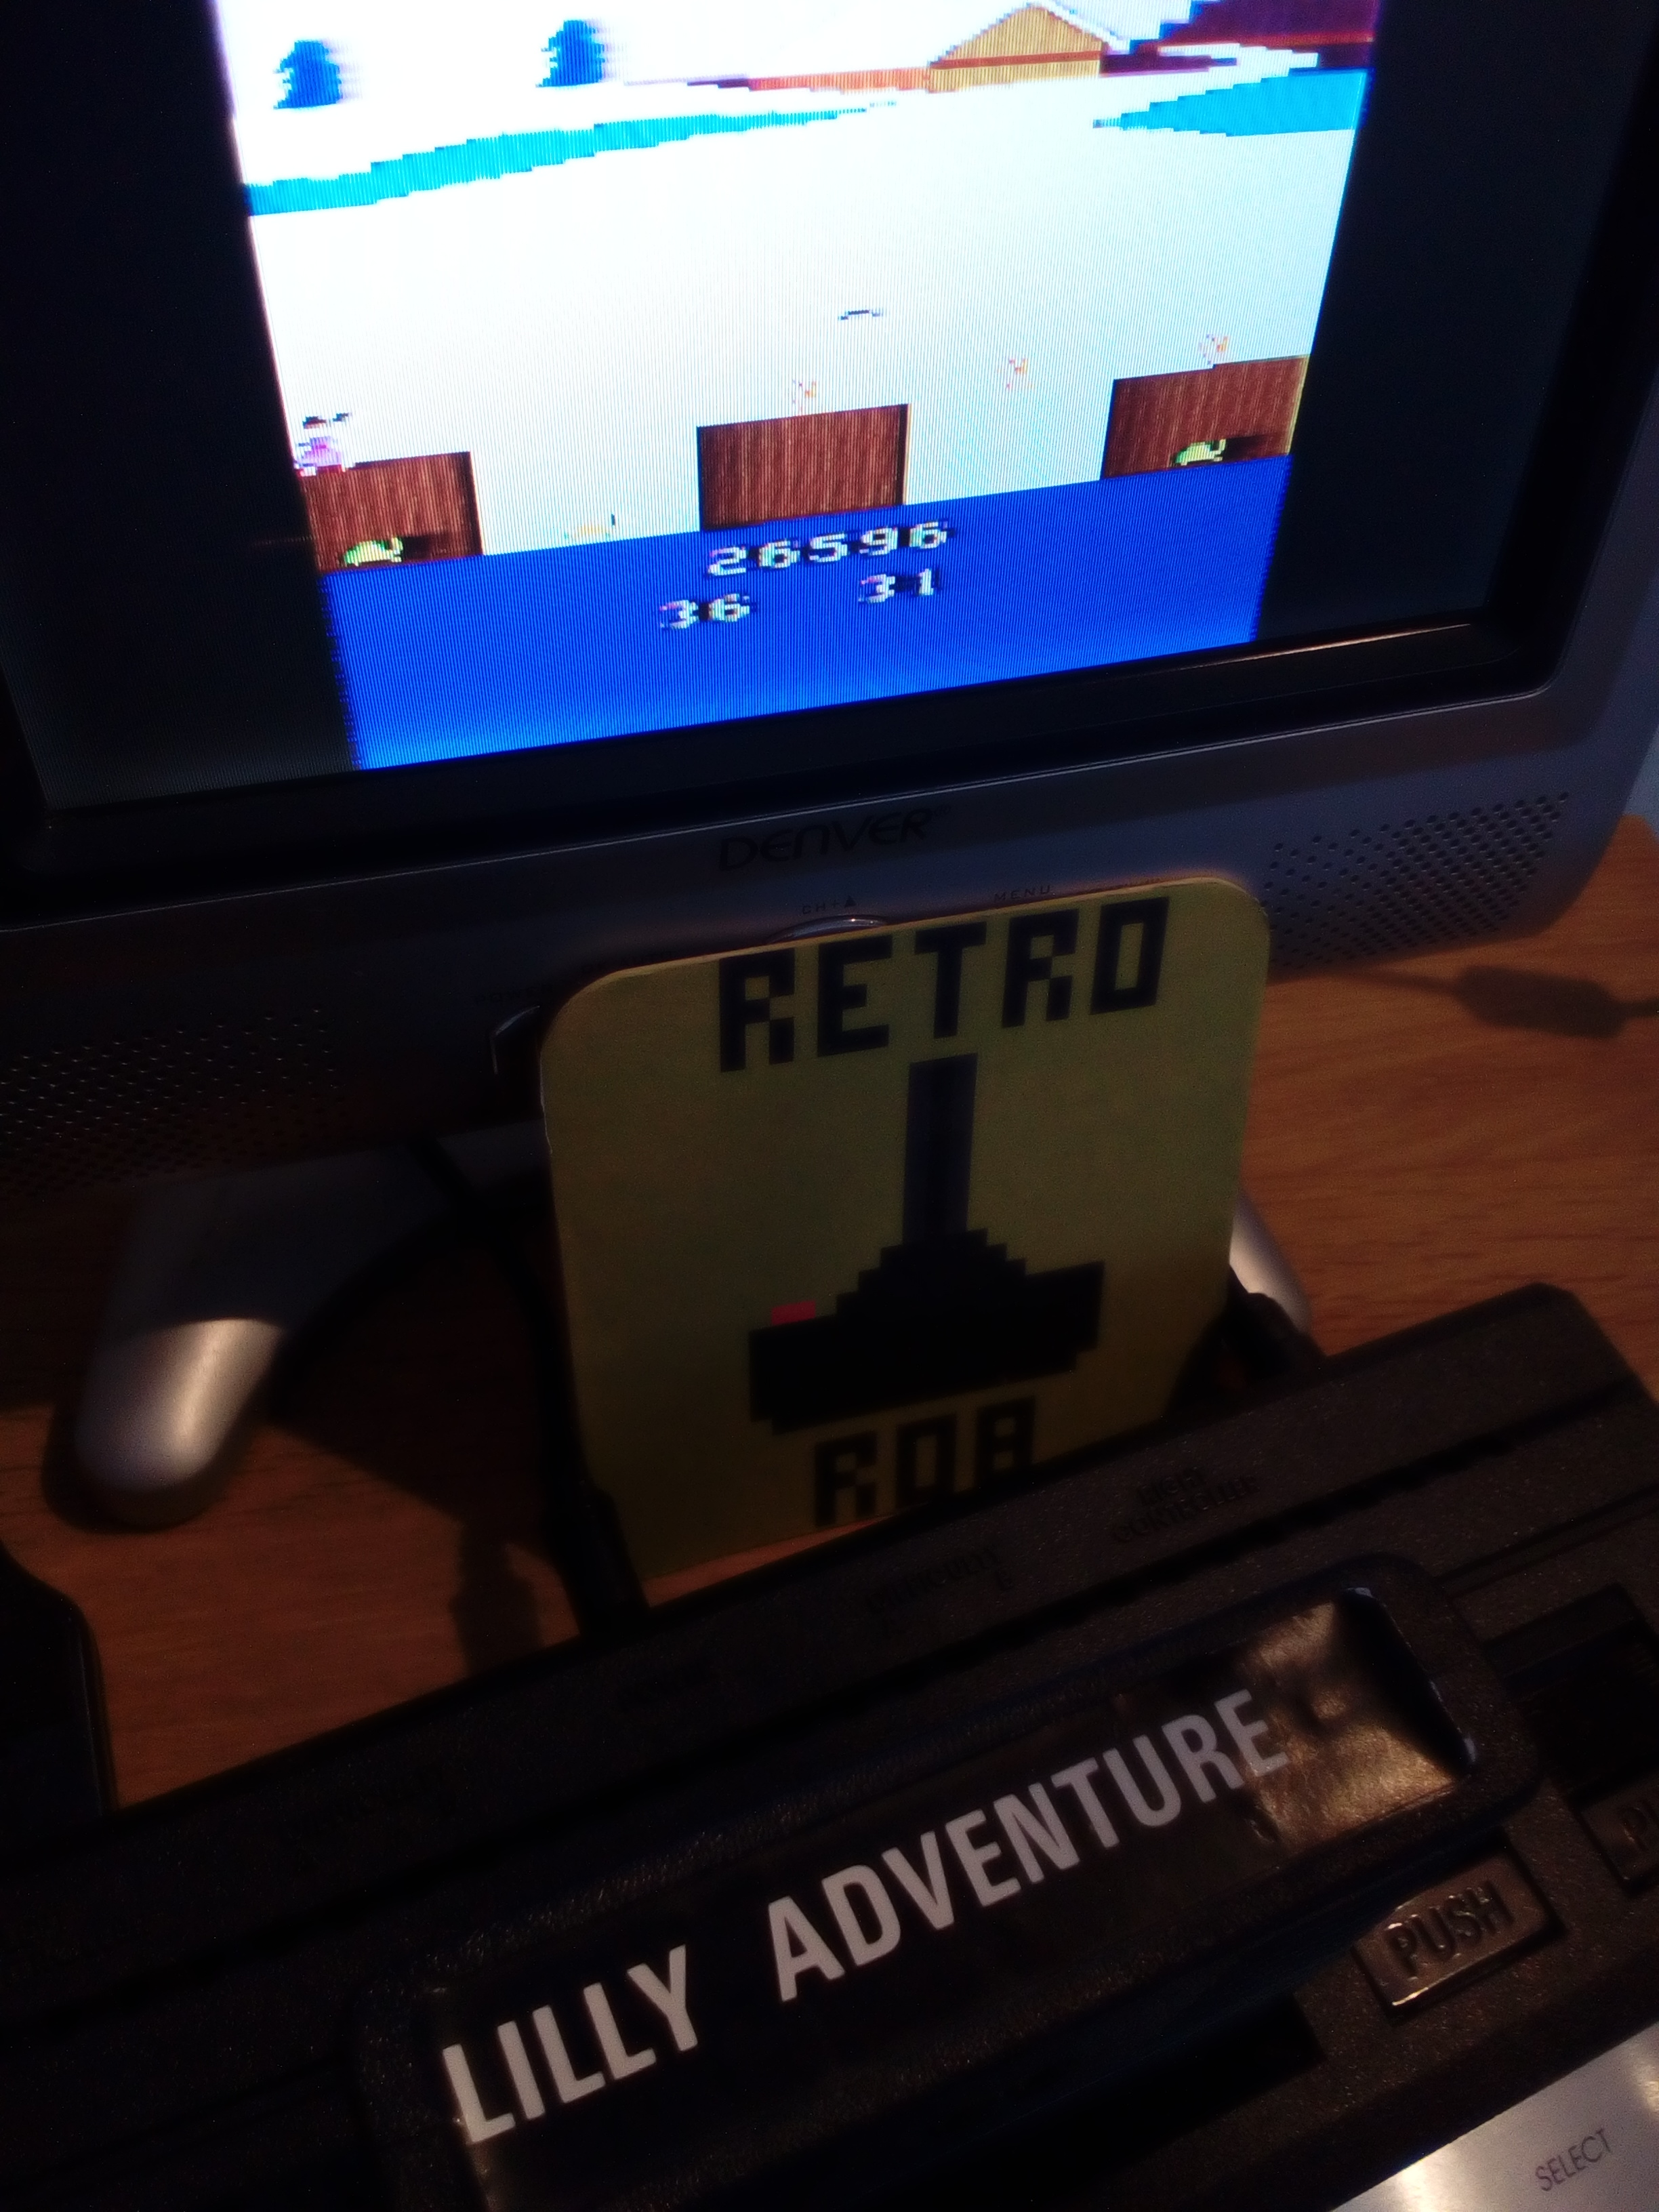 RetroRob: Lilly Adventure (Atari 2600 Novice/B) 26,596 points on 2019-03-13 07:41:12